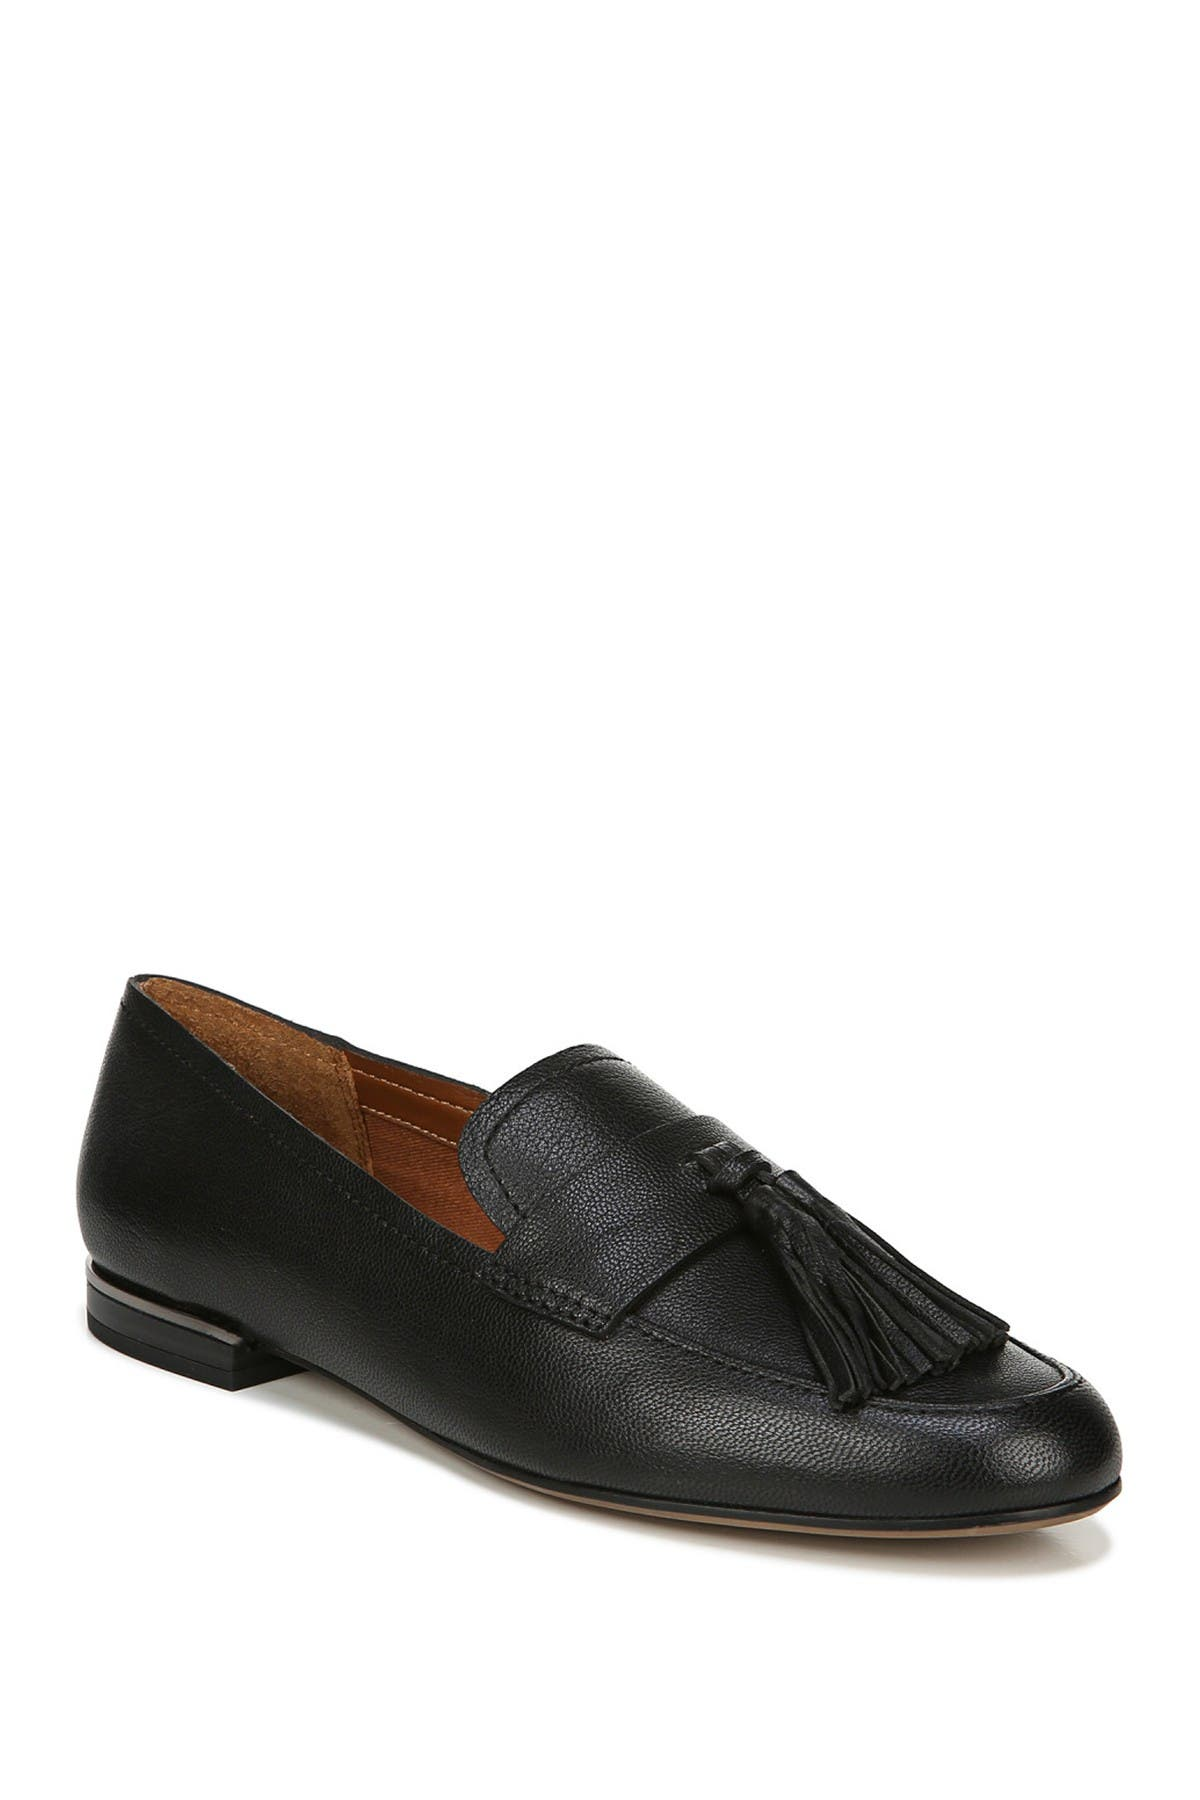 Image of Franco Sarto Brixley Leather Tassel Loafer